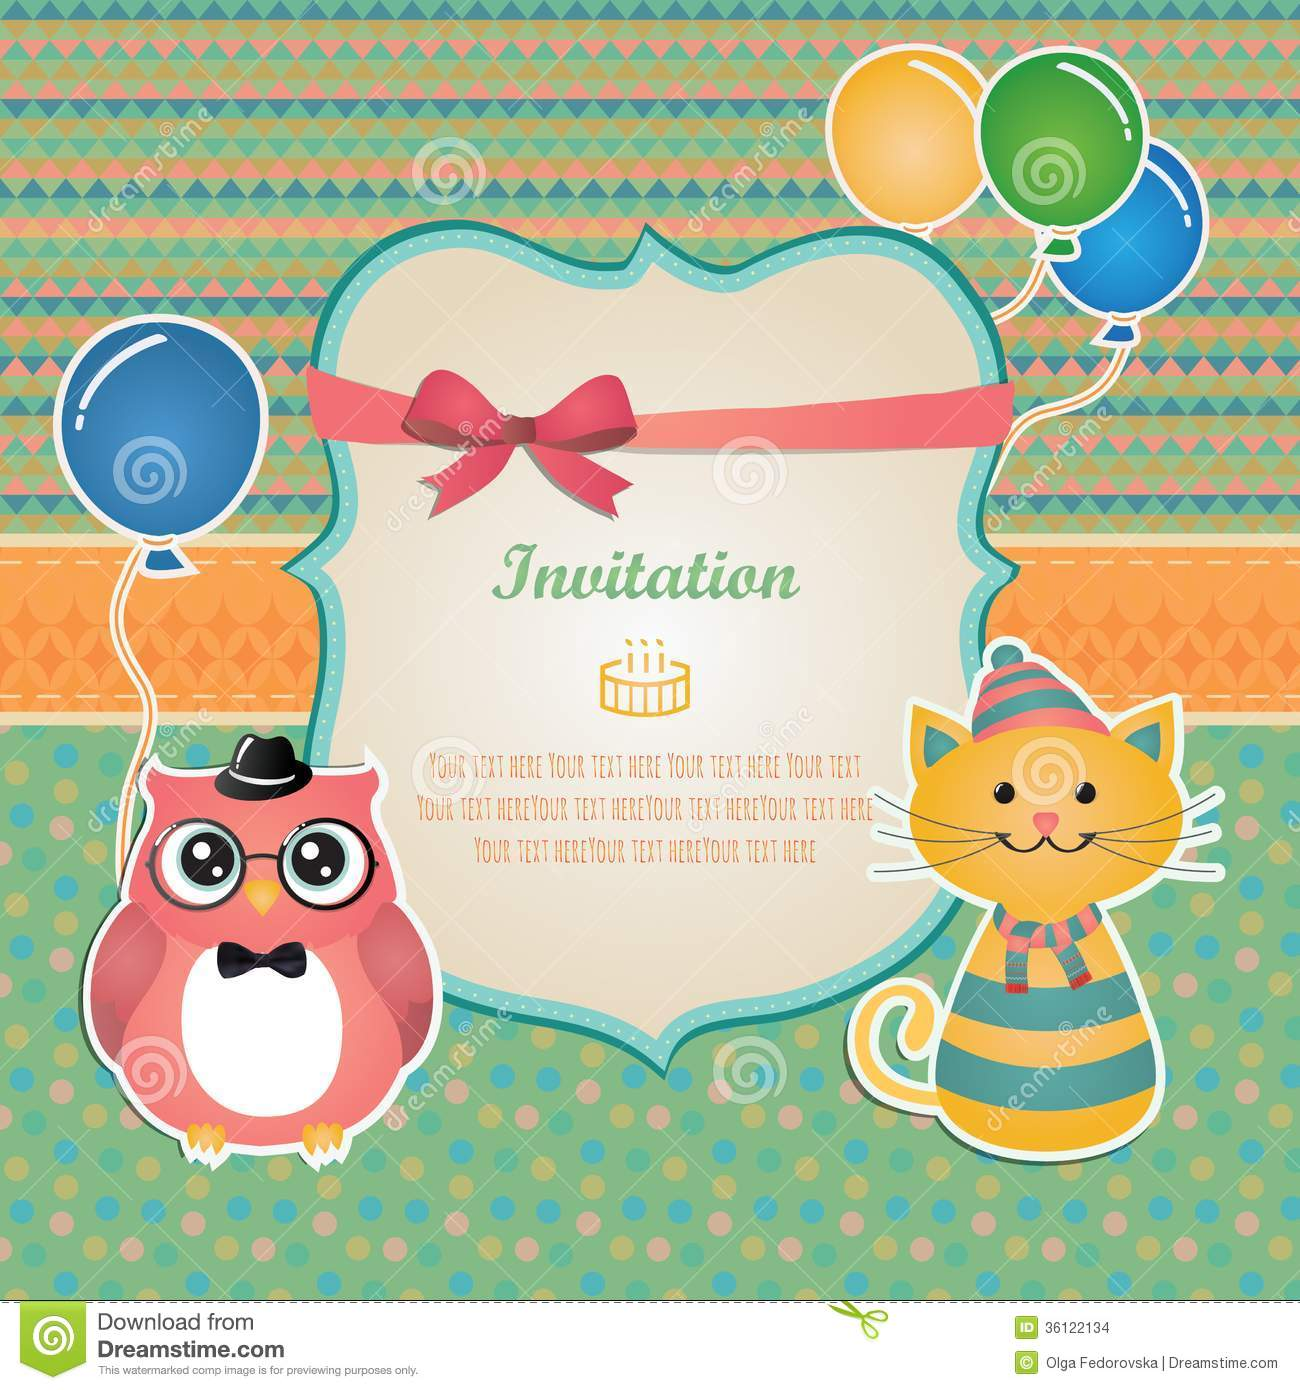 Birthday Party Invitation Card Design Images Image 36122134 – Party Invitation Card Design